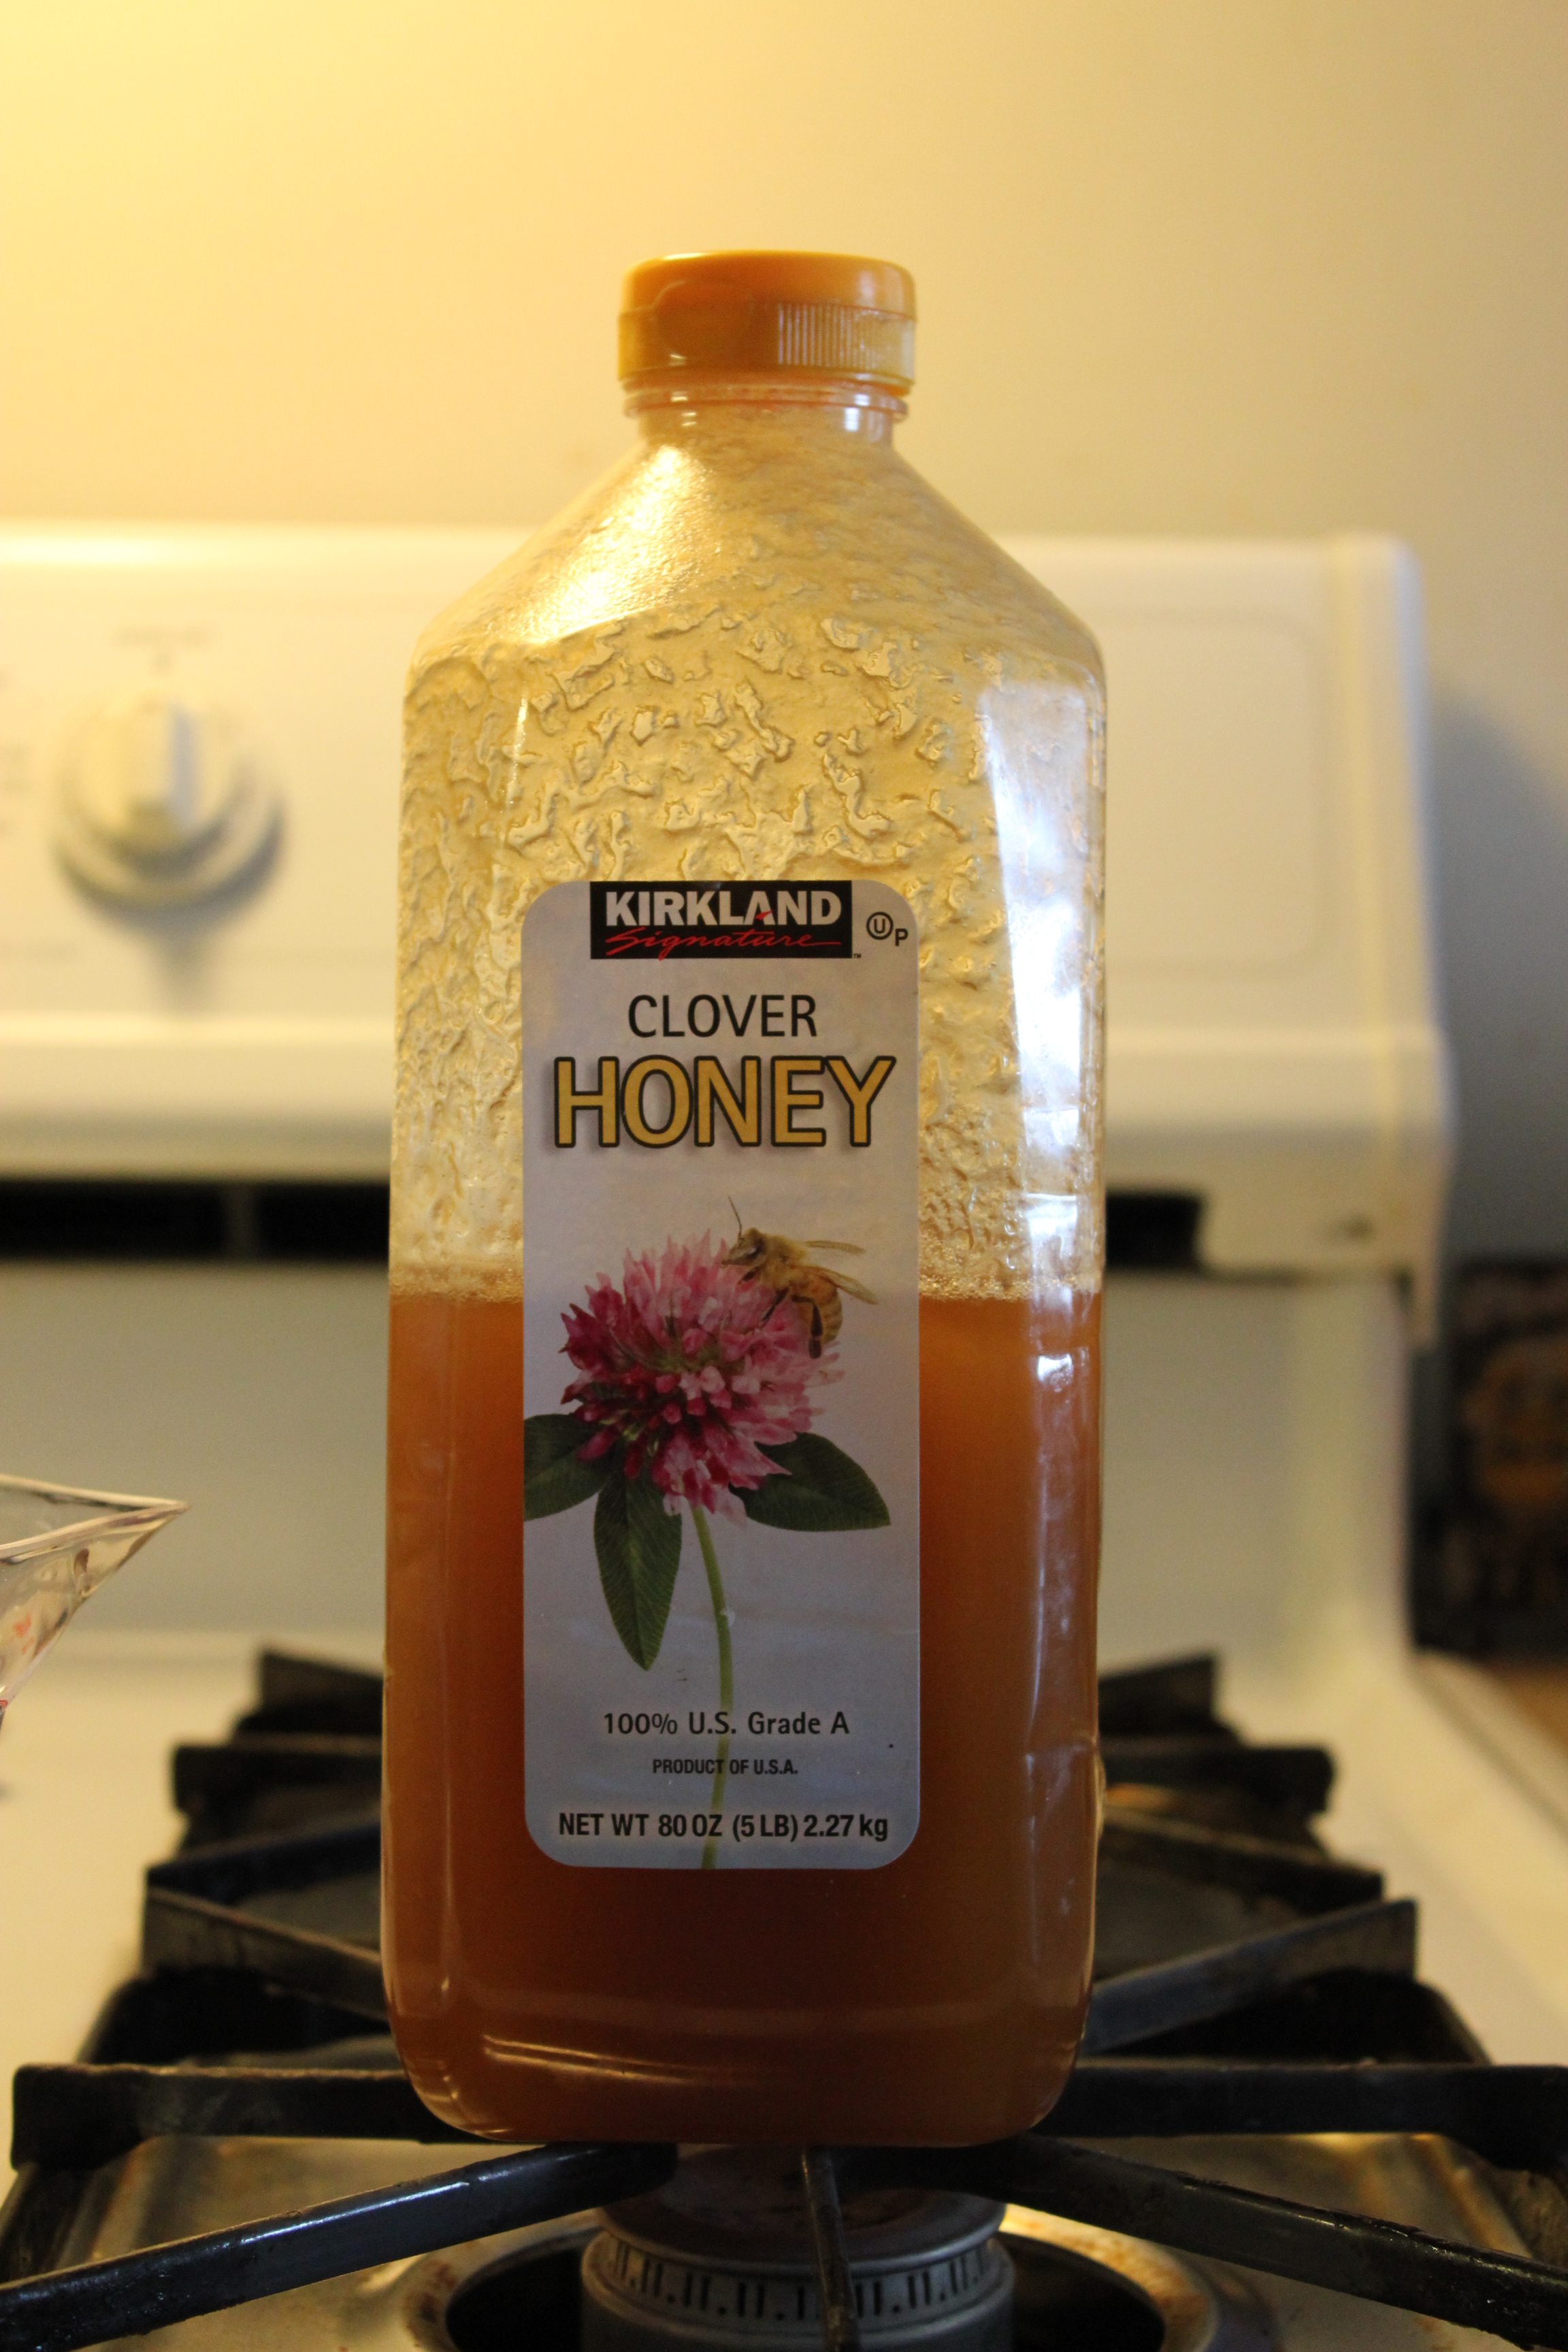 Decrystallizing honey